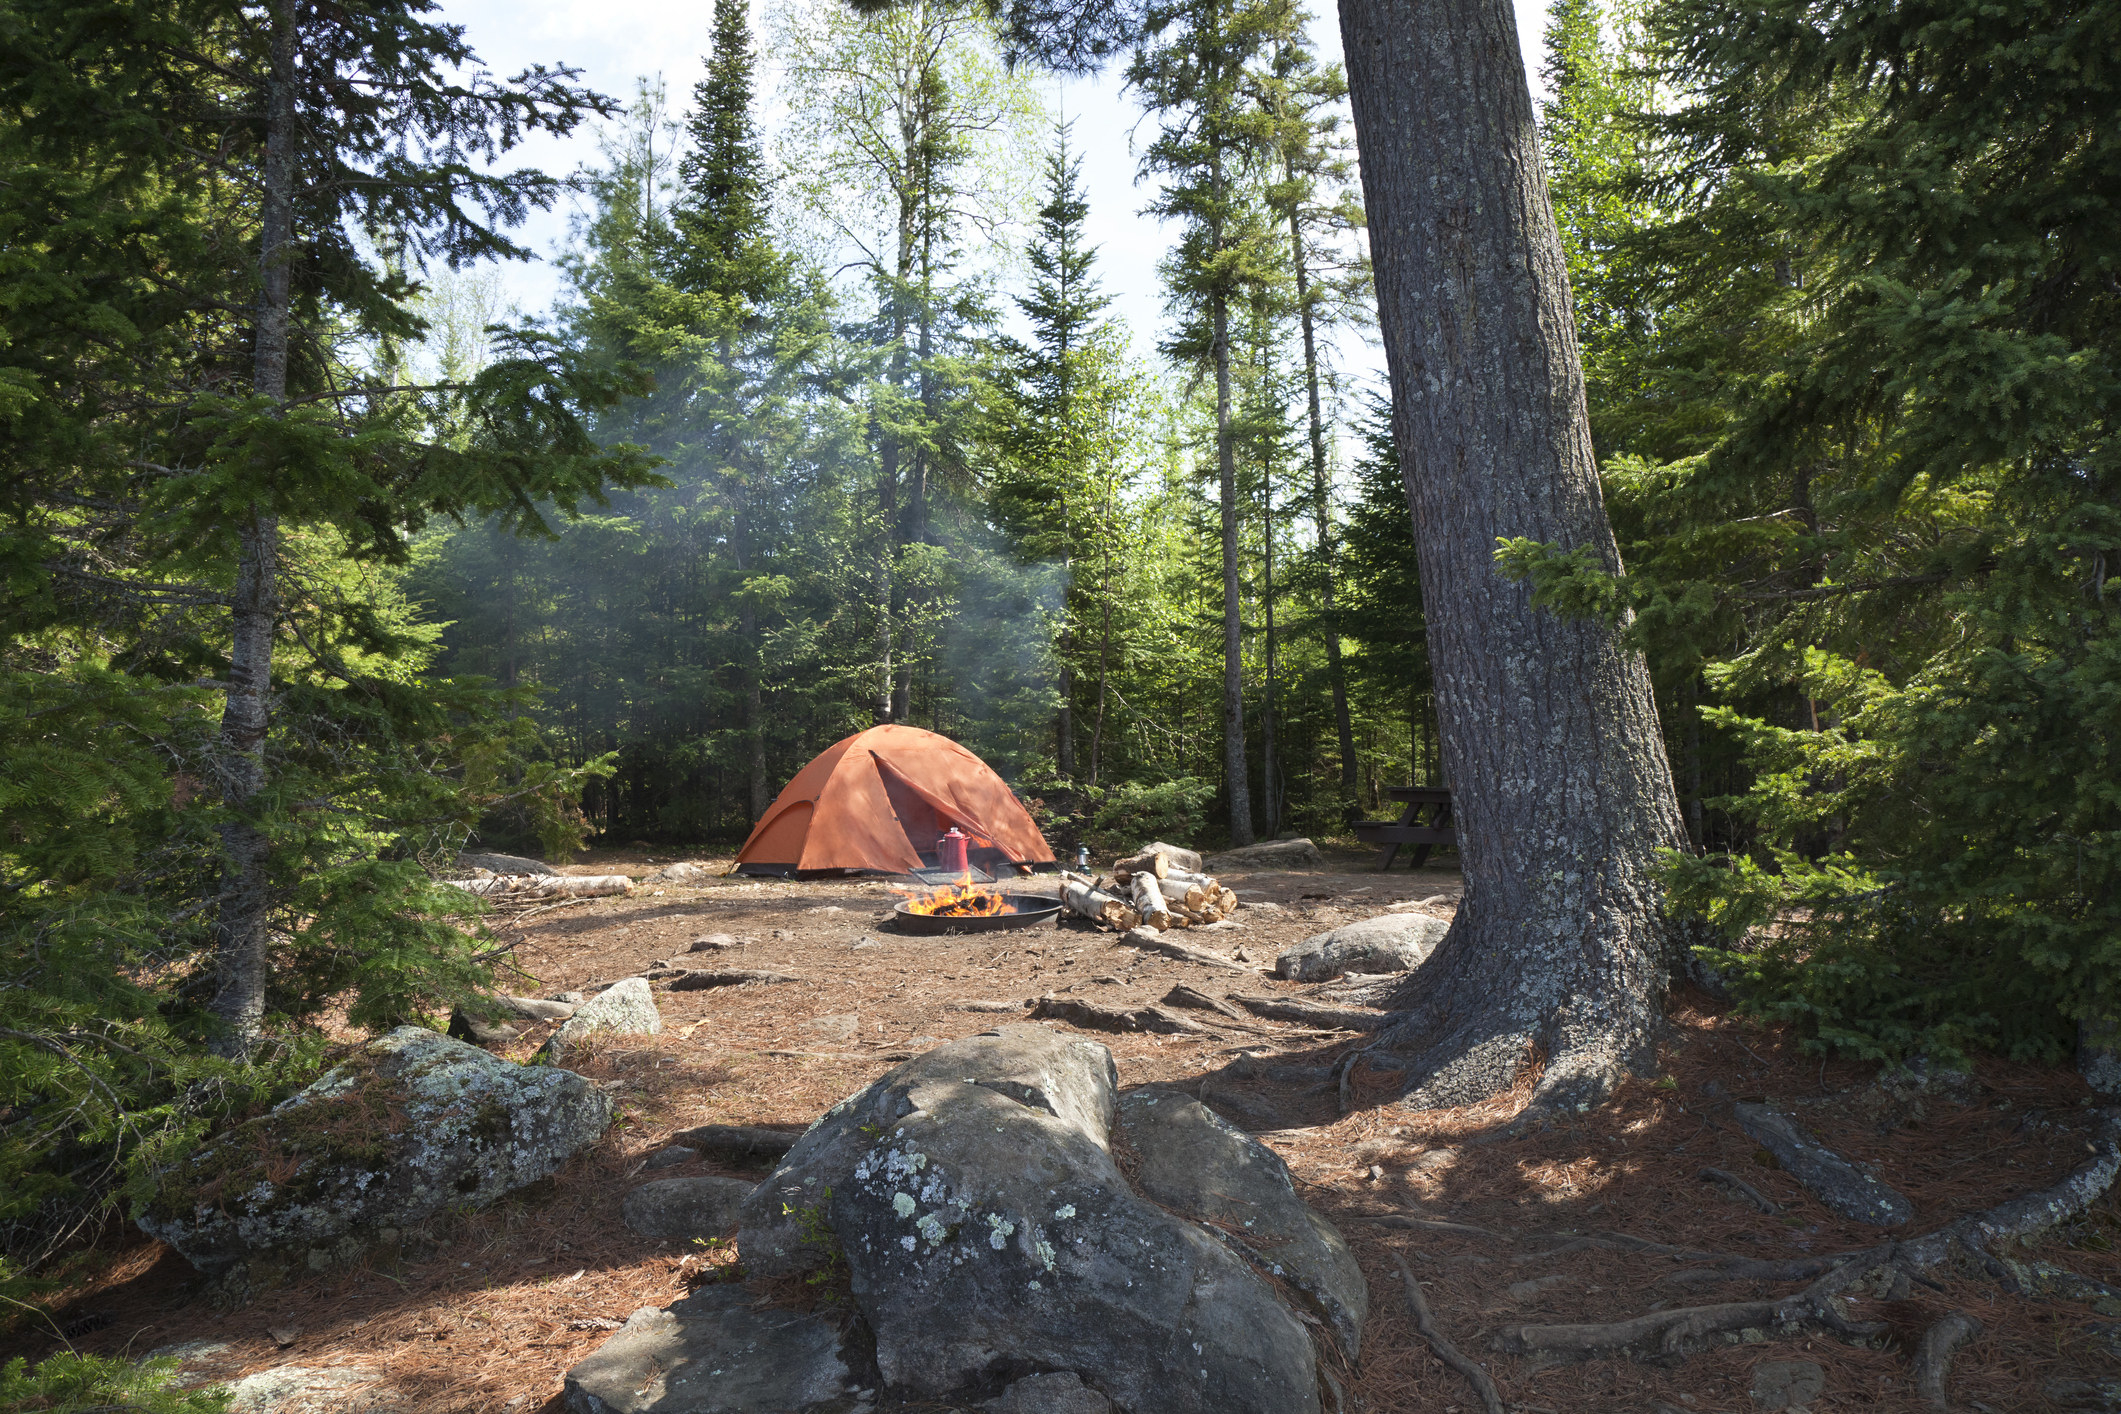 campsite with orange tent and campfire set among pines in the northern Minnesota wilderness